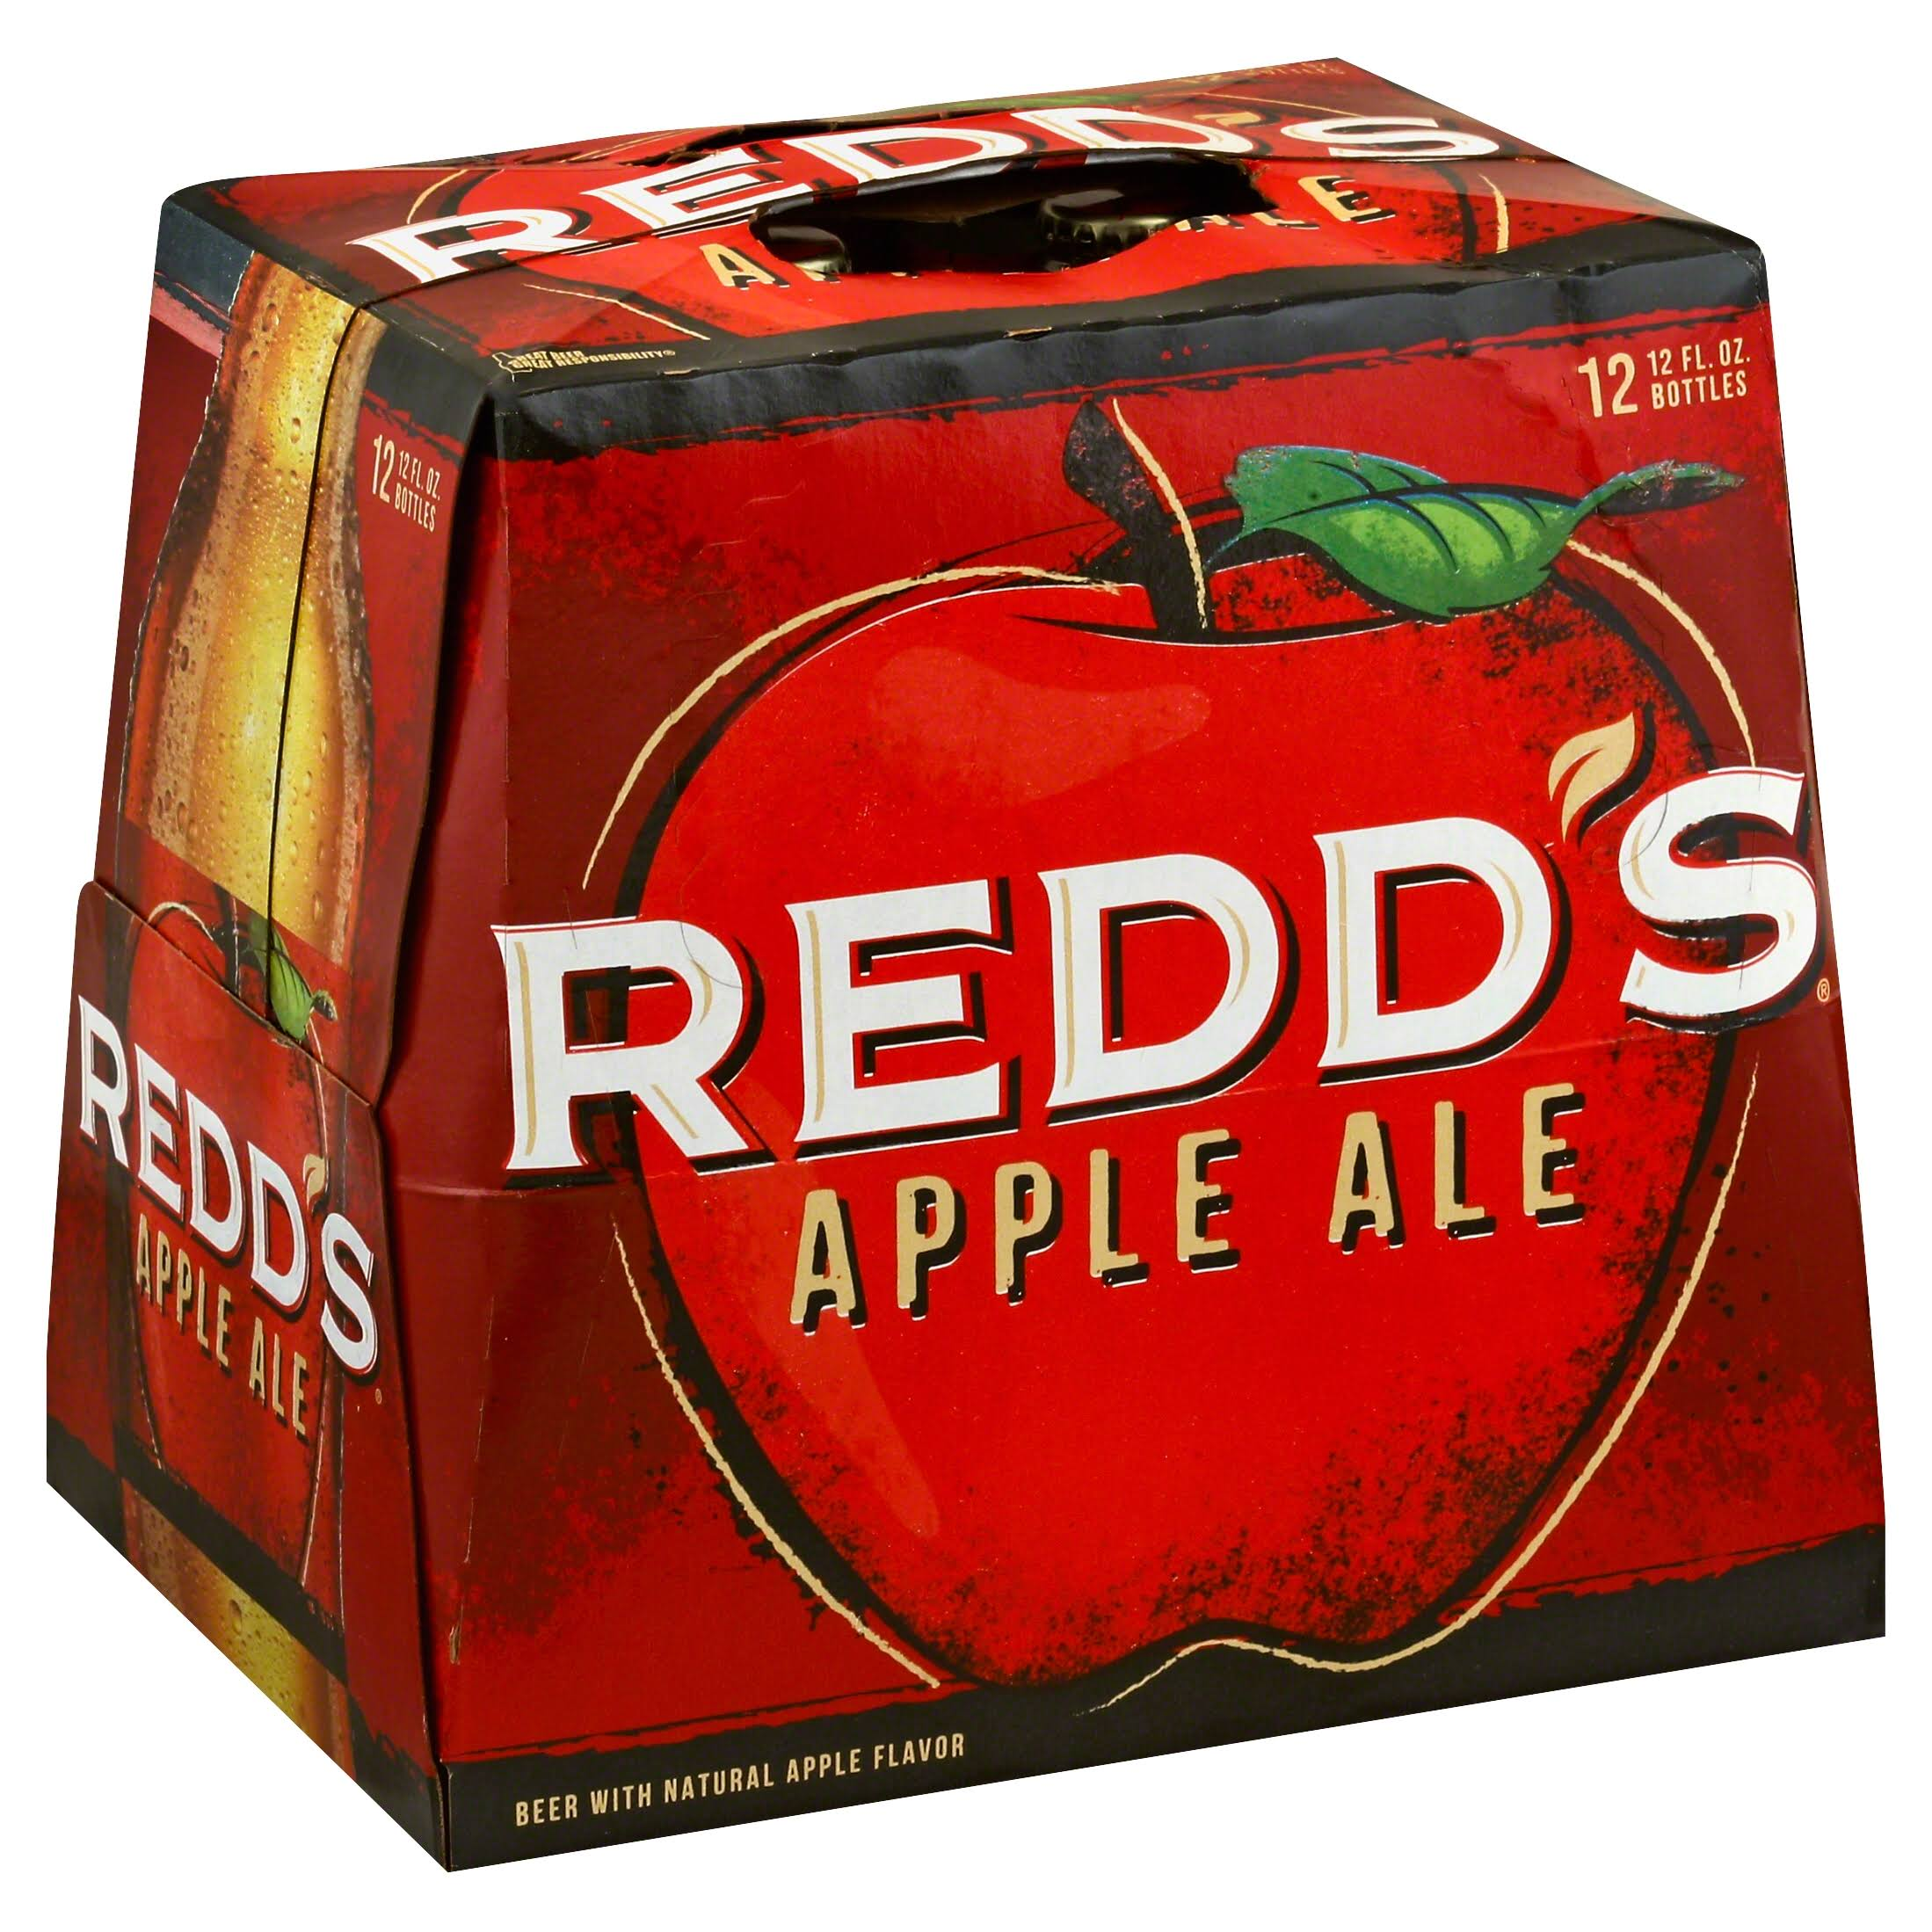 Redd's Apple Ale - 12 Bottles